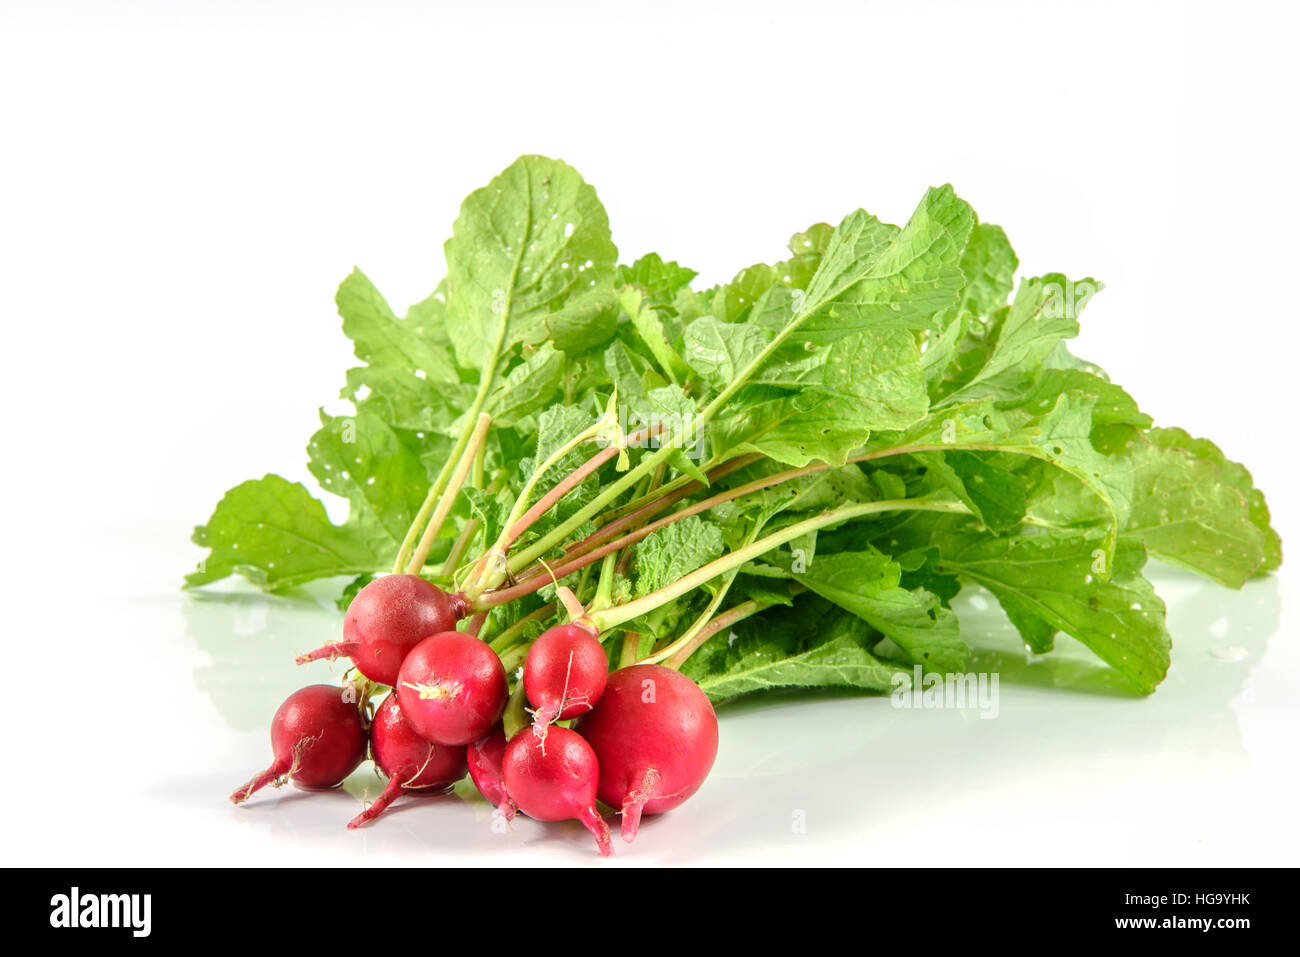 Fresh bunch of radishes from organic production without fertilizers - Stock Image